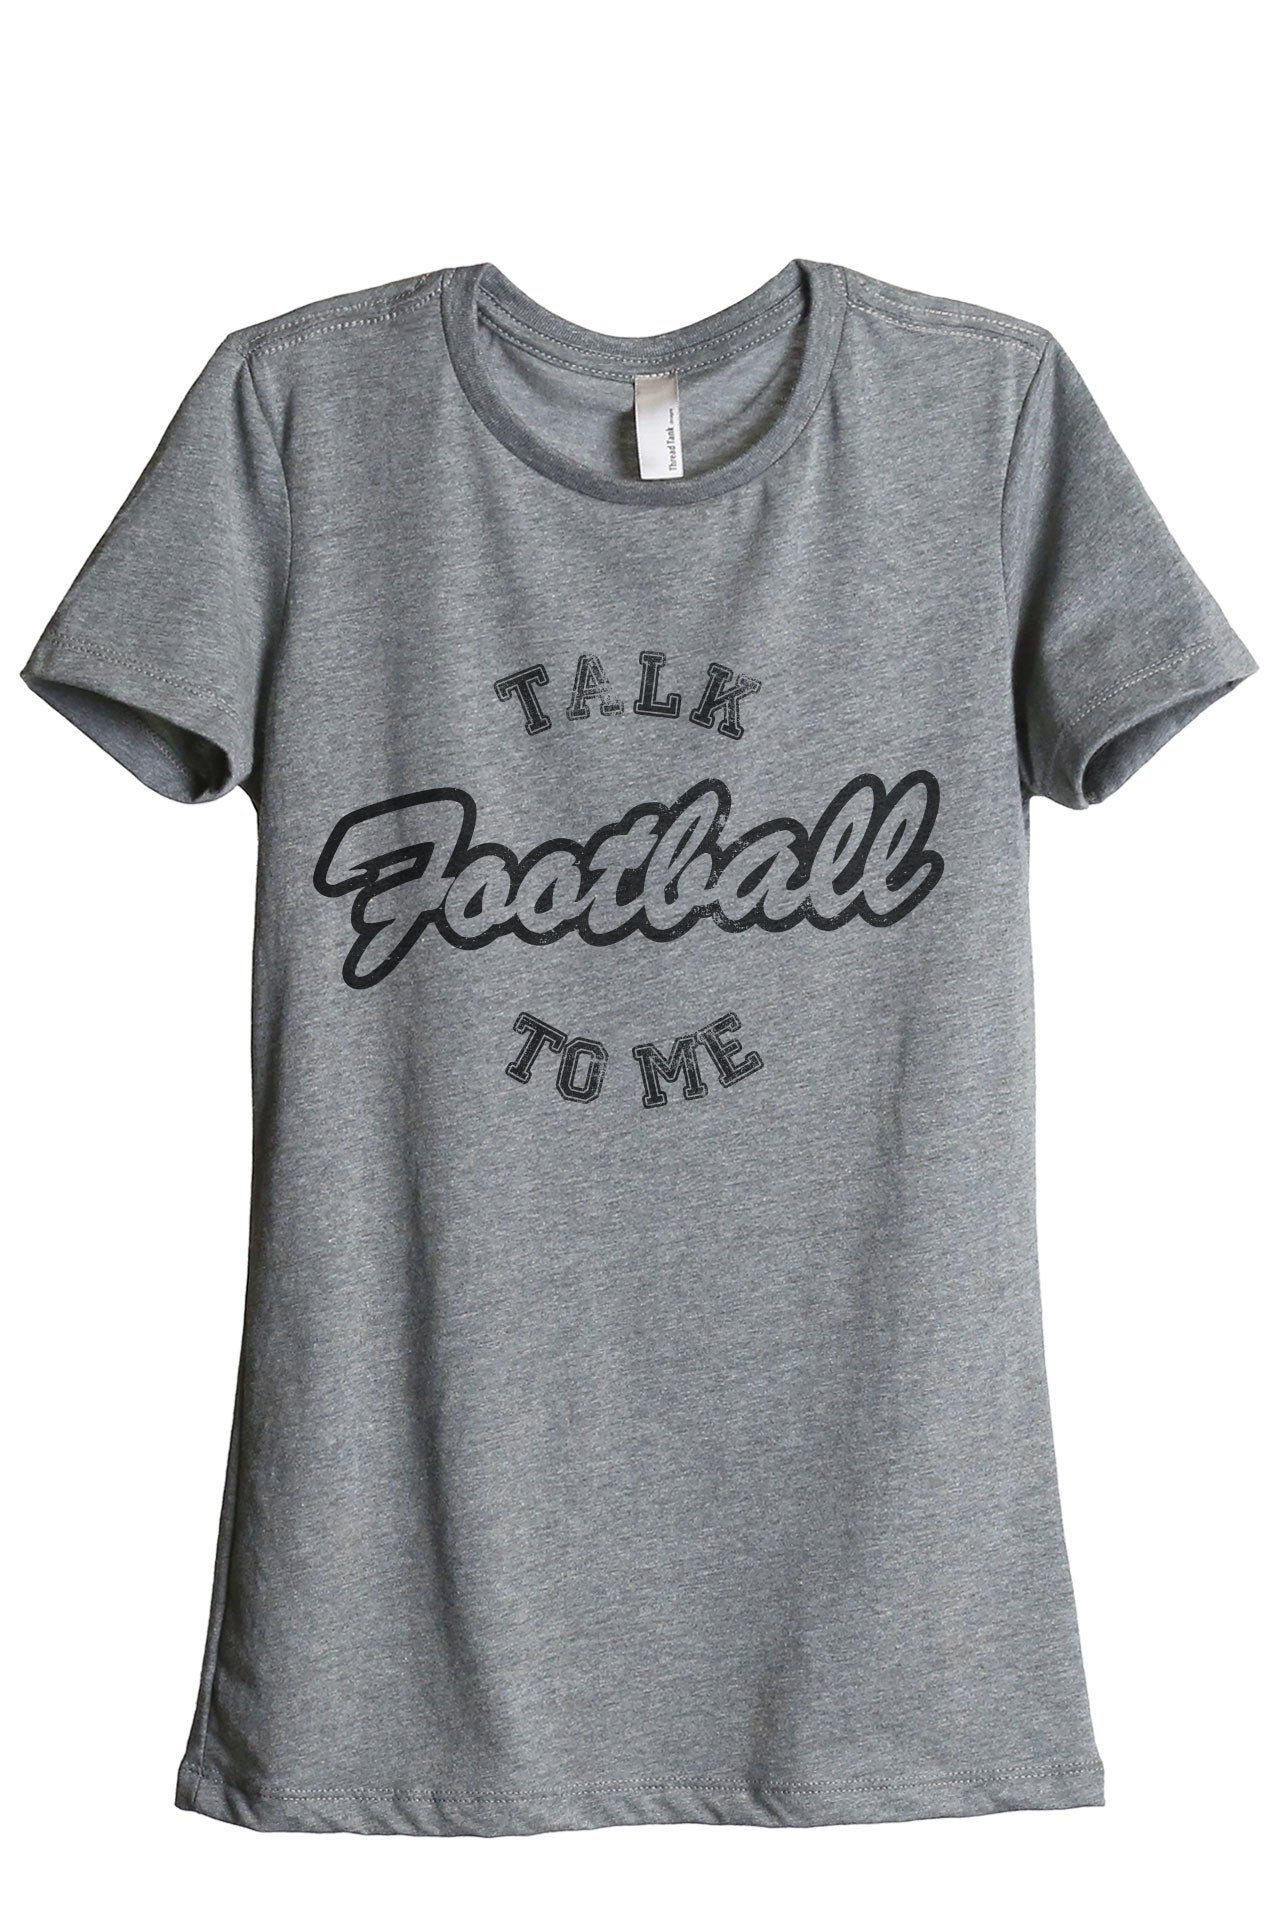 Talk Football To Me Women's Relaxed Crewneck T-Shirt Top Tee Heather Rouge